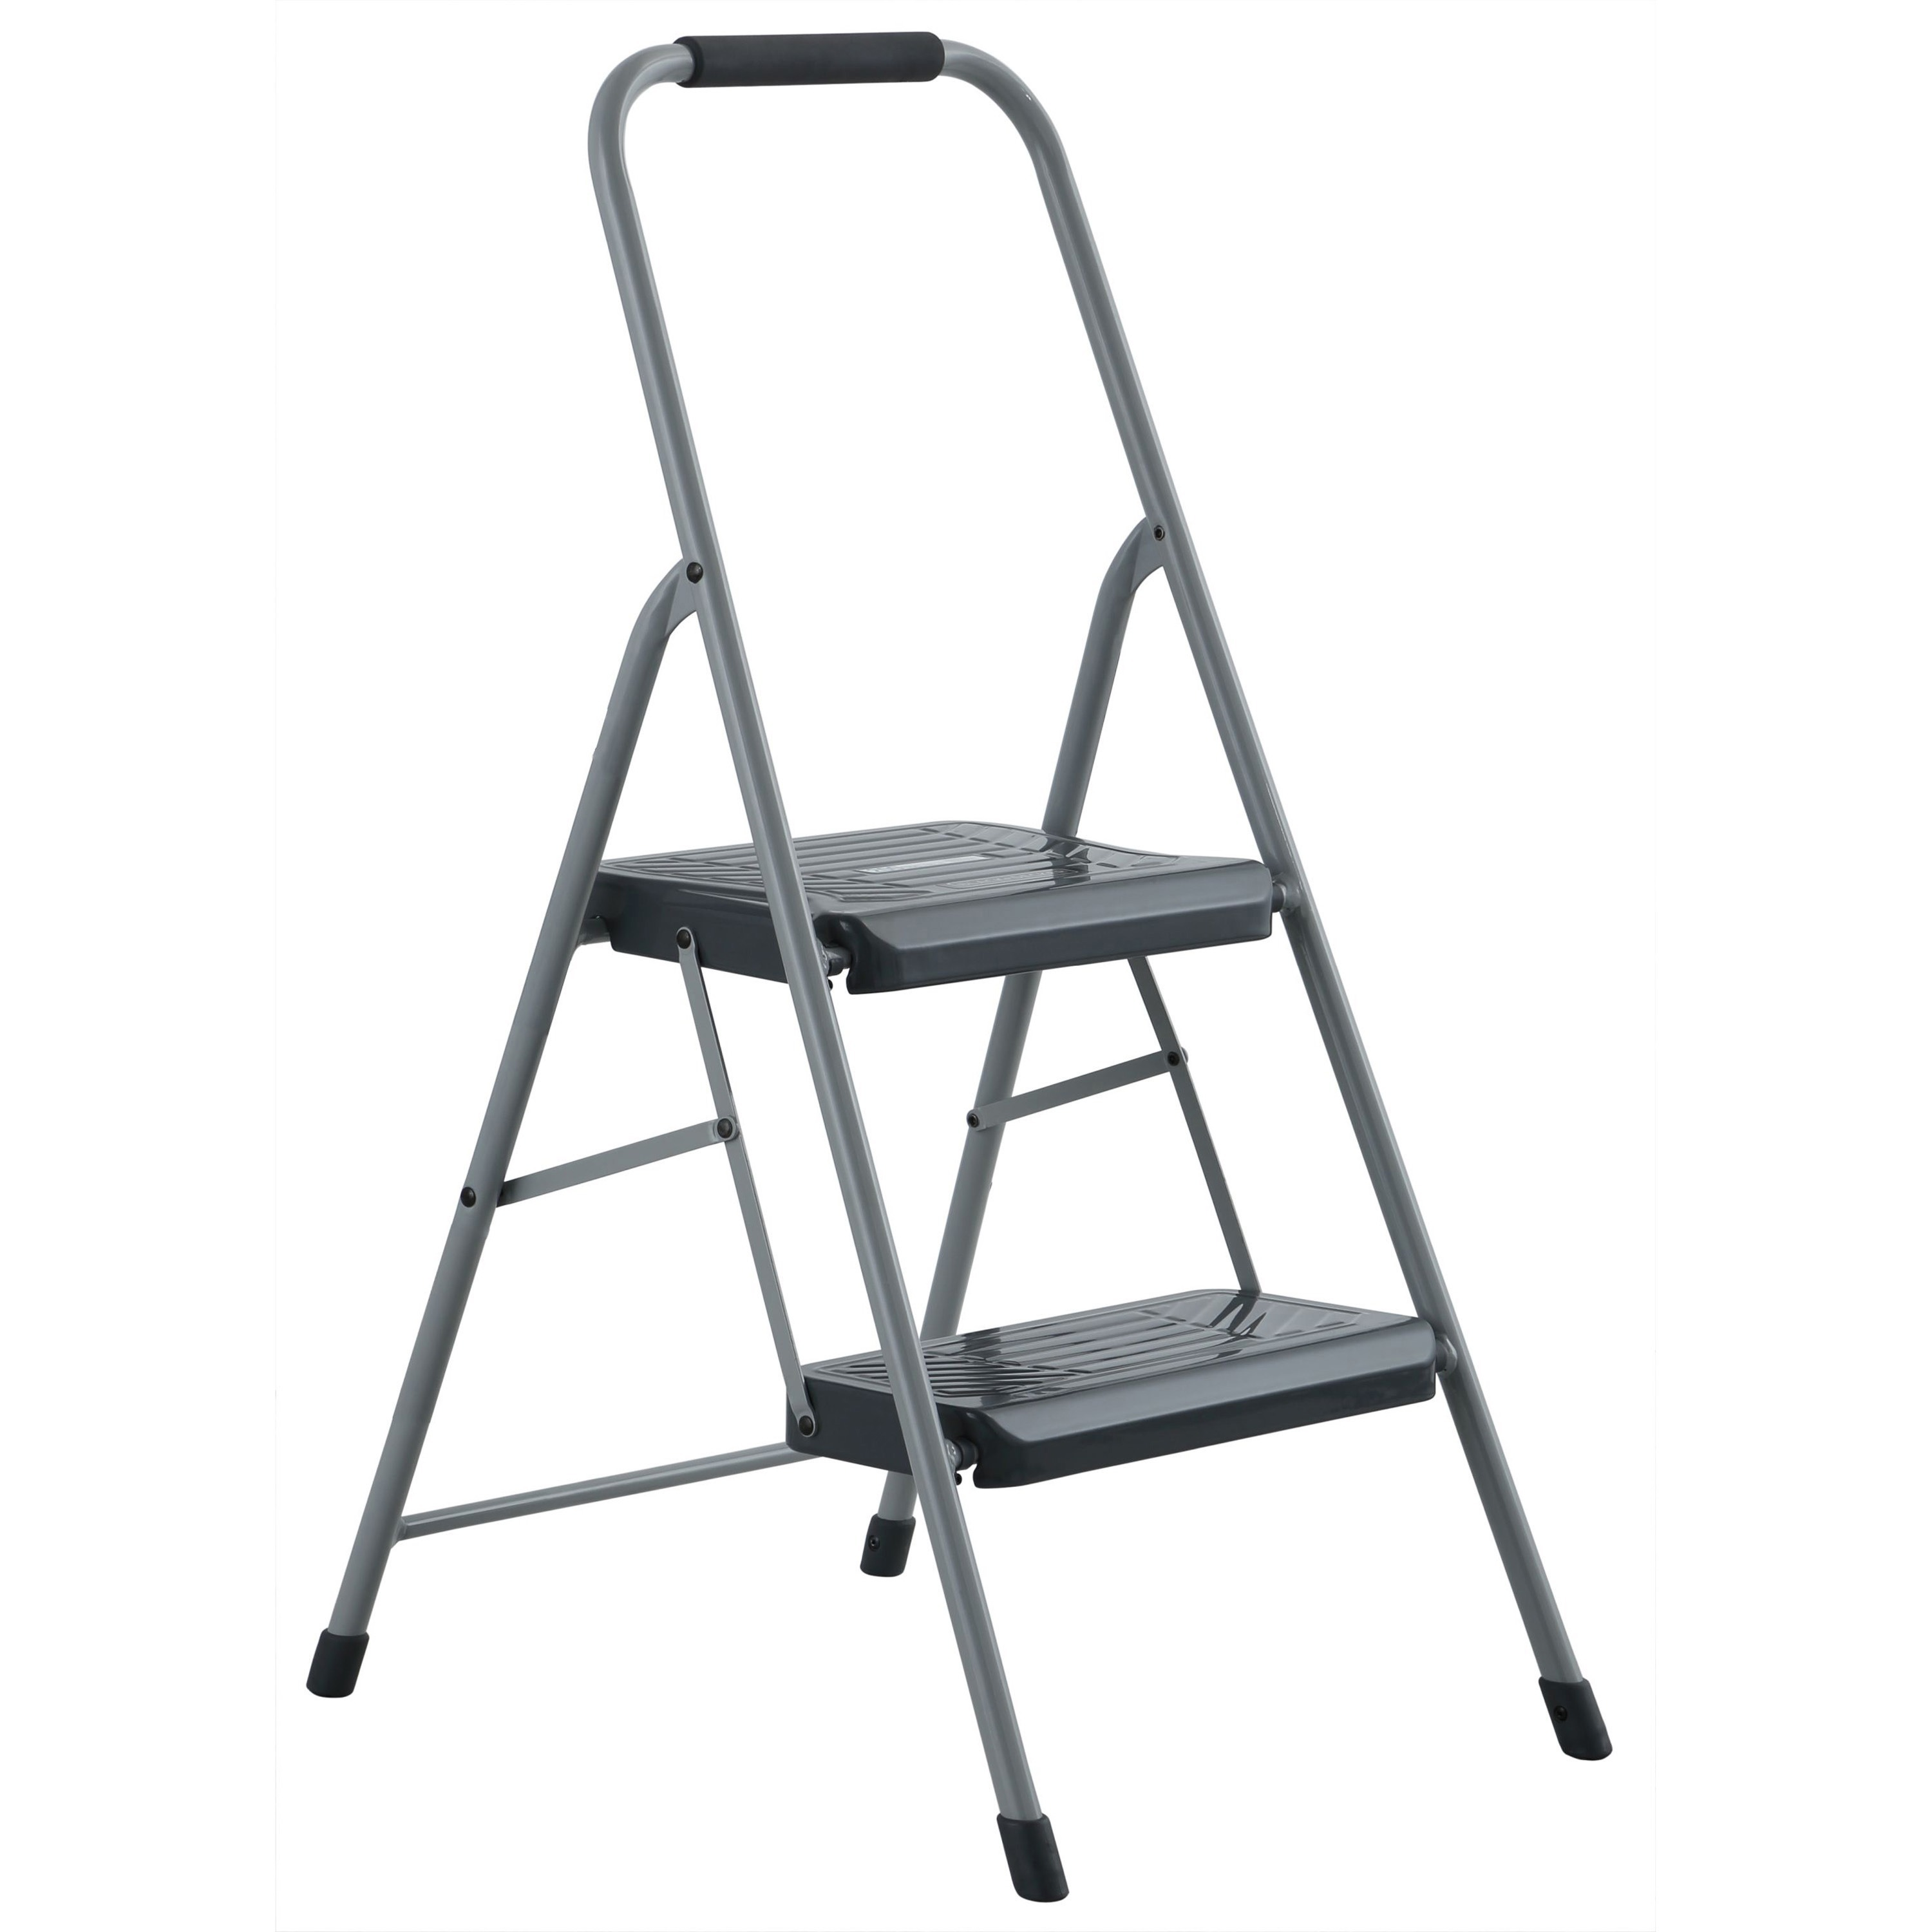 Louisville Black and Decker Steel Step Stool, Two-Step, 200 lb Cap, Gray by Louisville Ladder, Inc